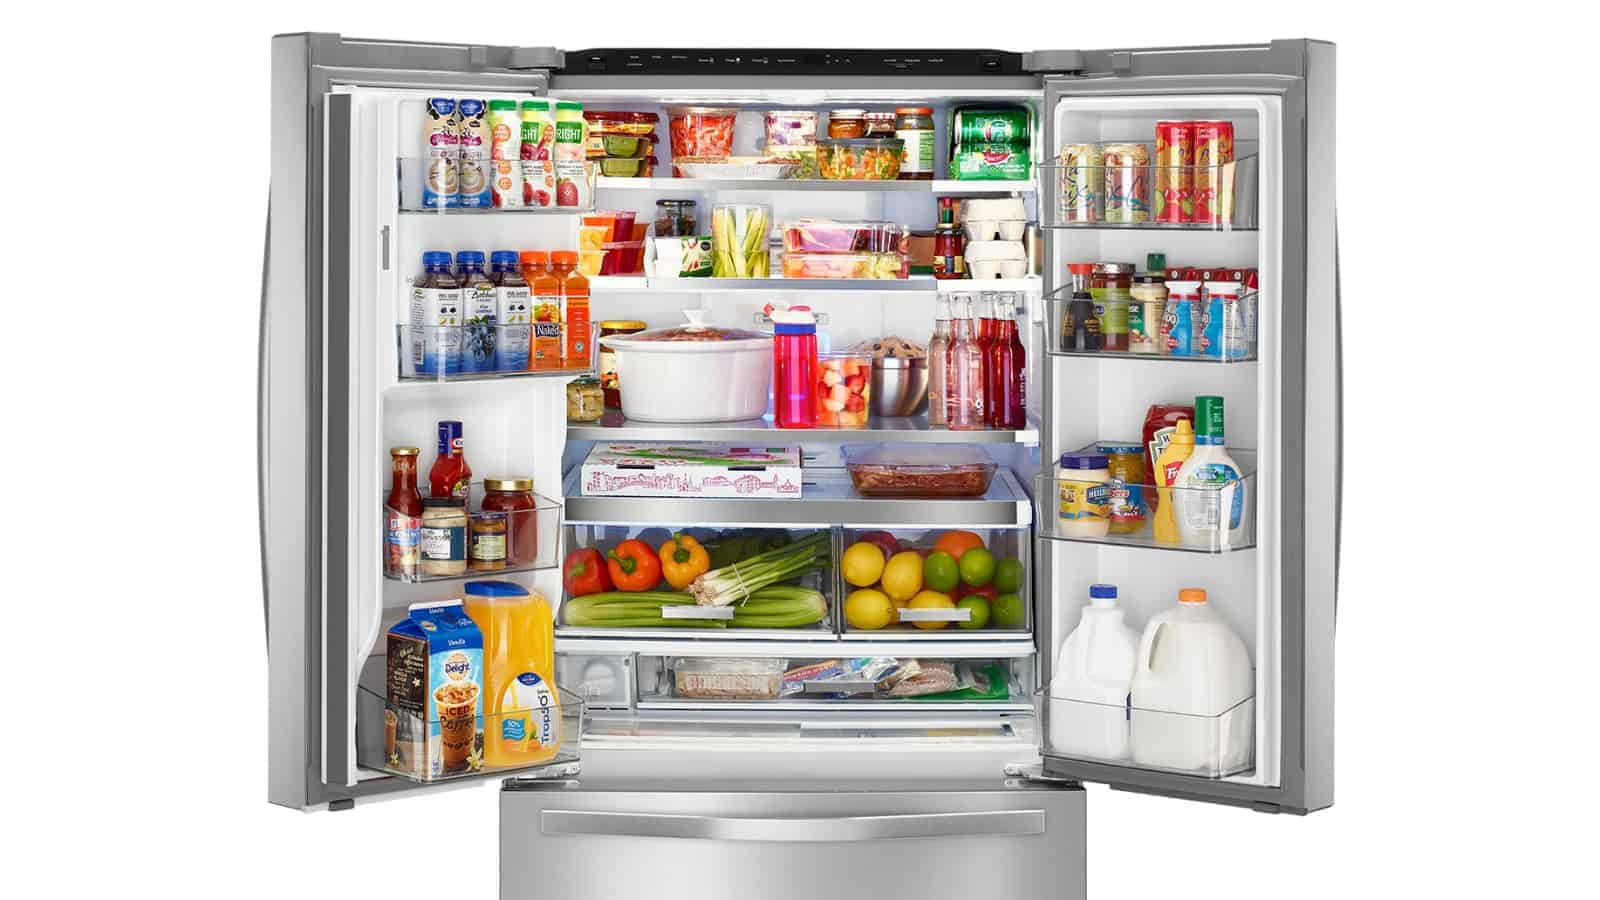 55 Foods You Should Never Put in the Fridge